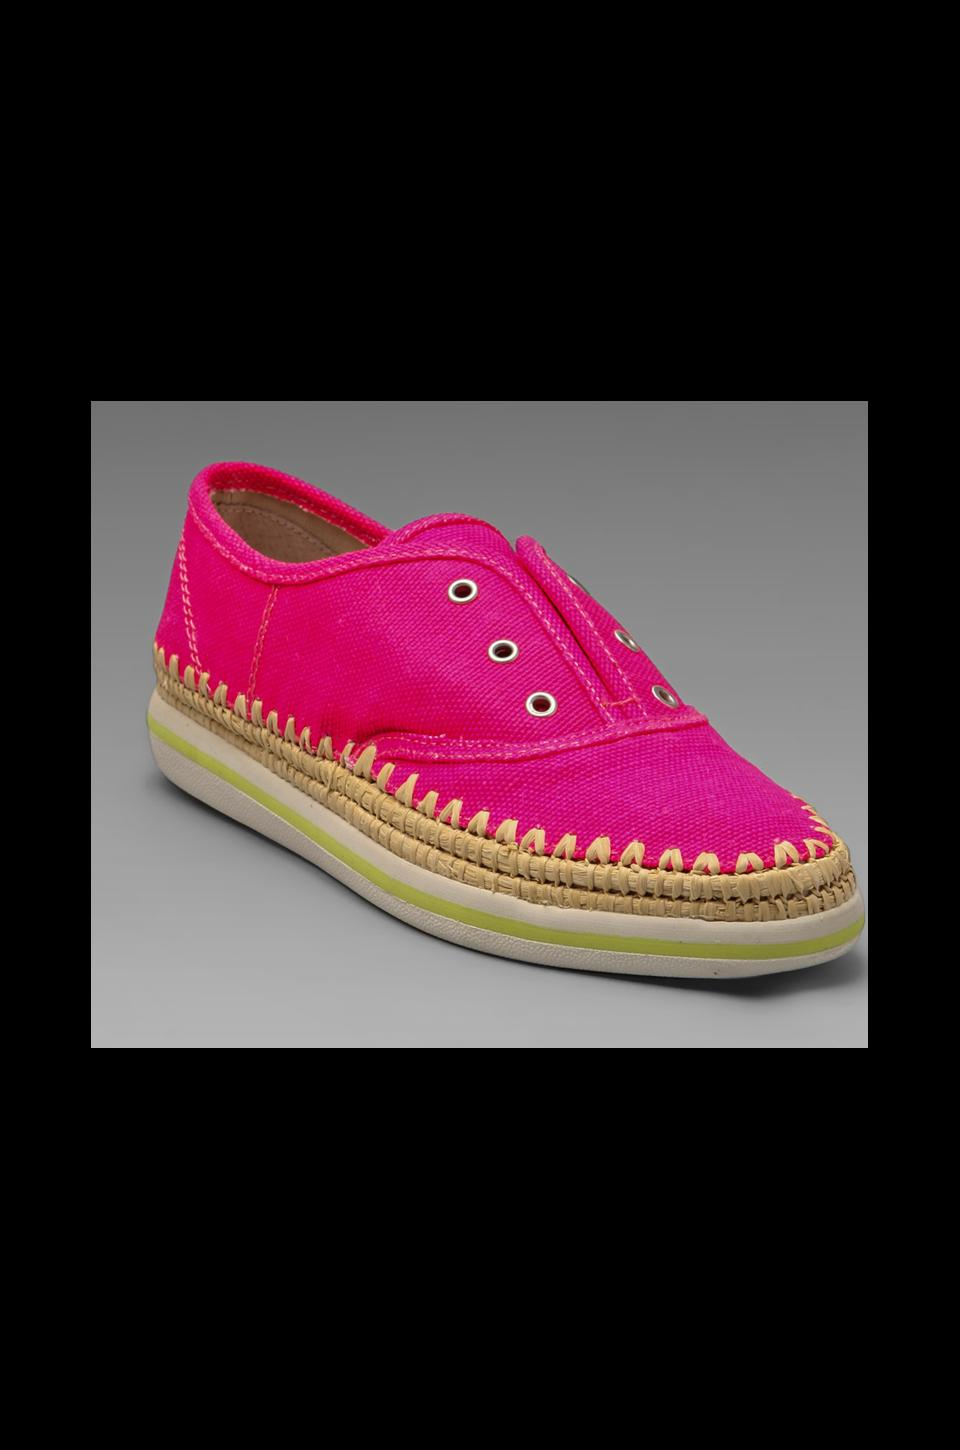 Boutique 9 Sneaker in Pink